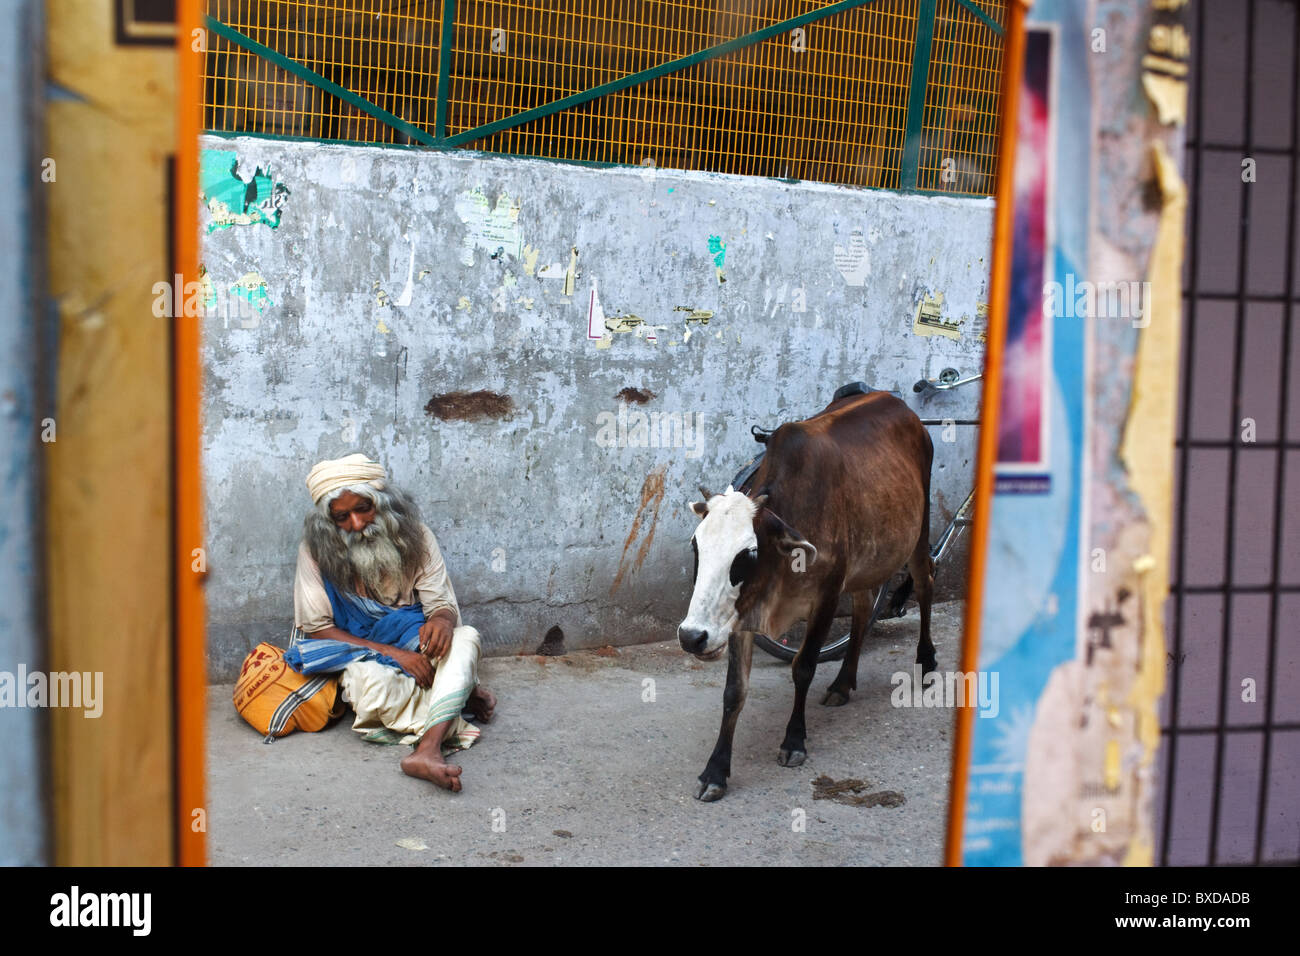 A reflection of a sadhu and cow in a mirror in Rishikesh, Uttarakhand, India. Stock Photo